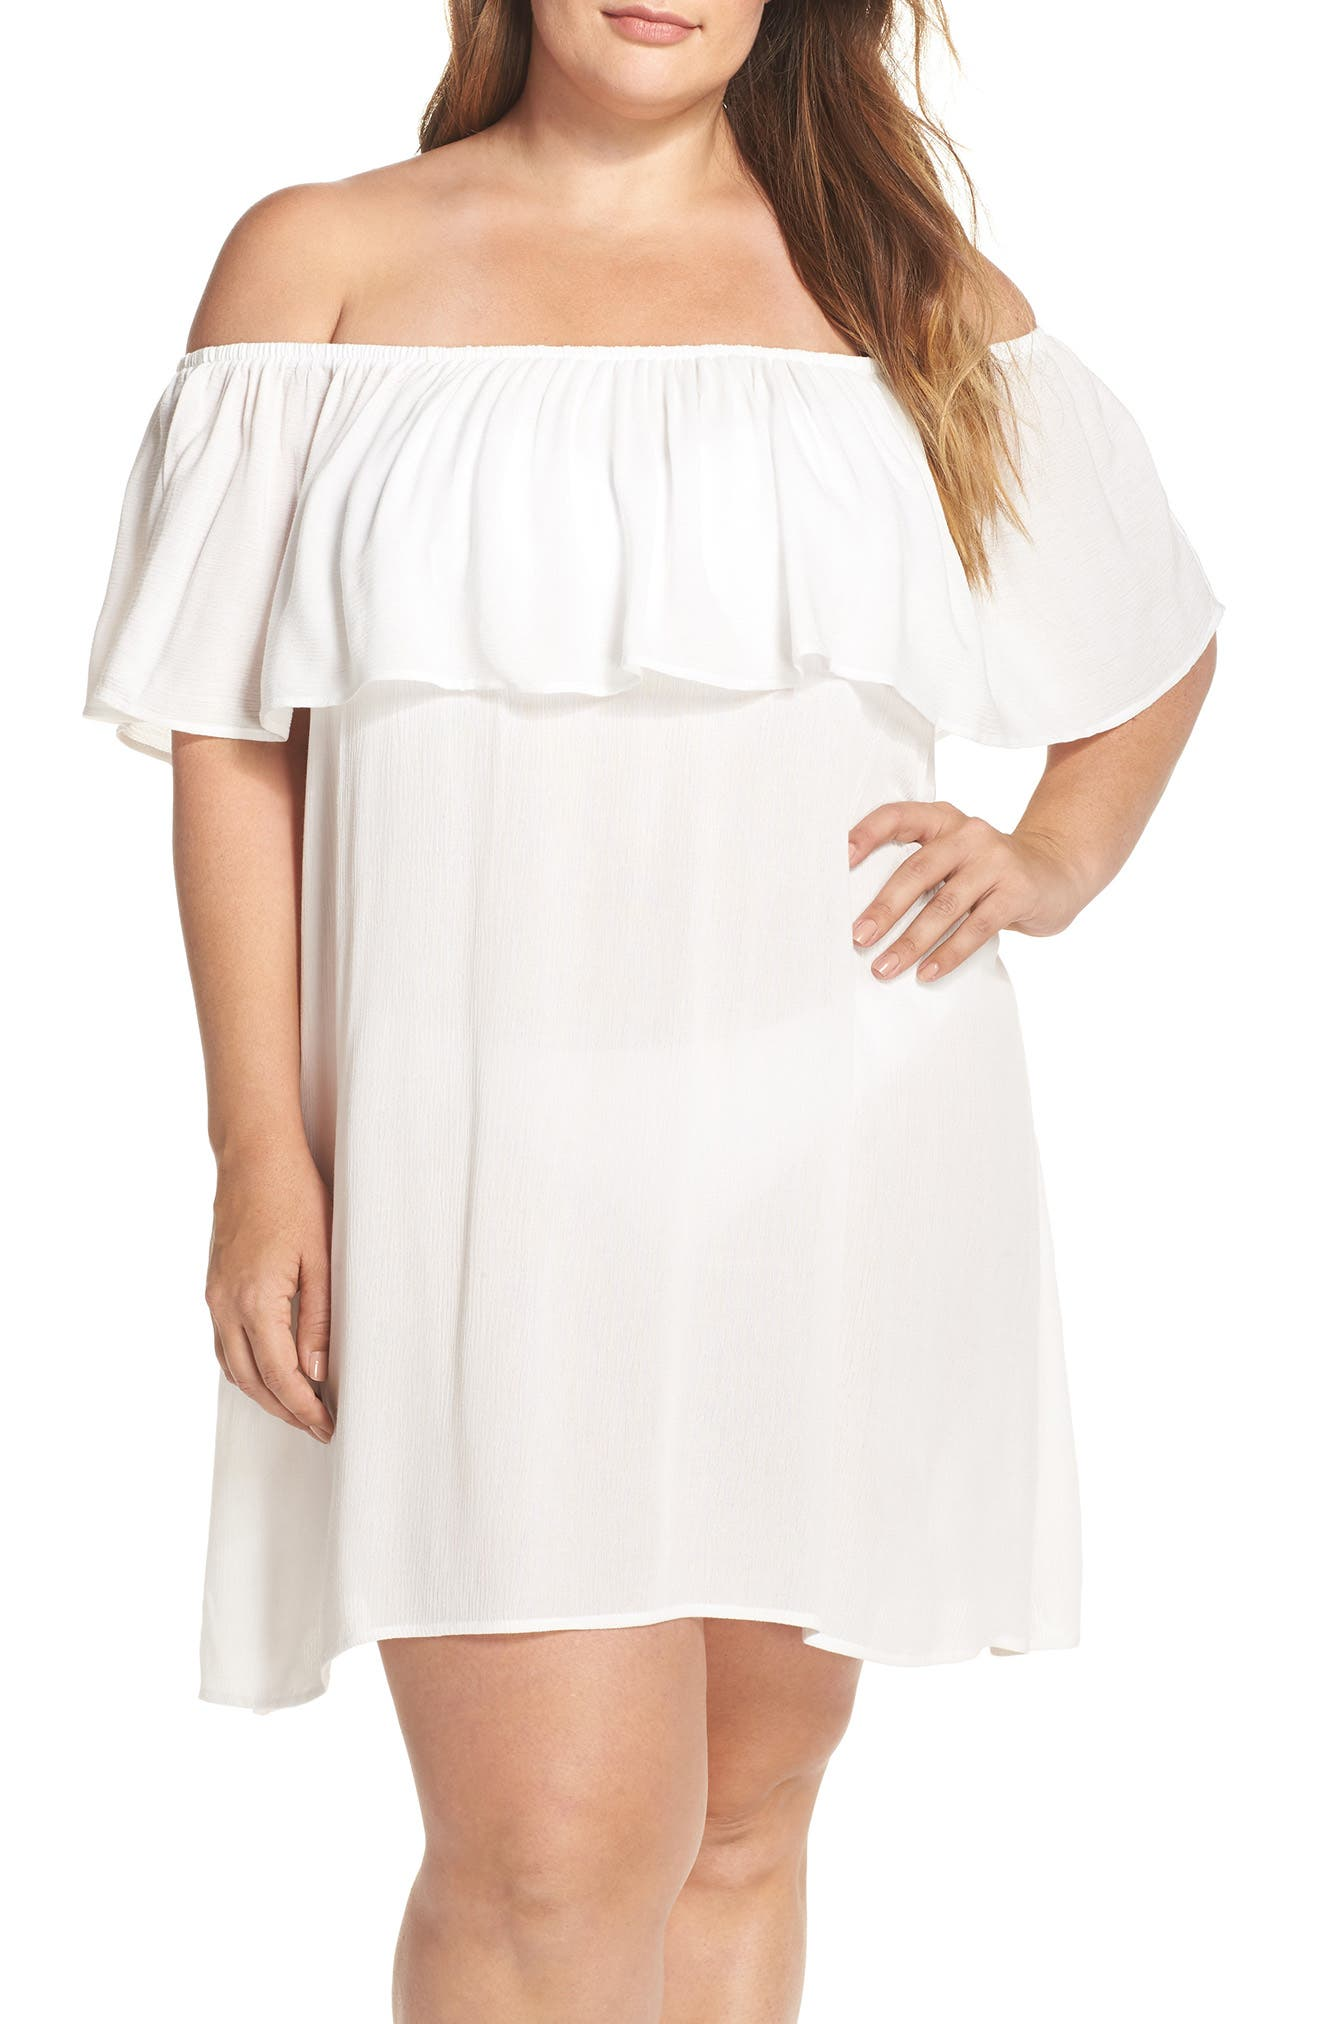 Southern Belle Off the Shoulder Cover-Up Dress,                             Main thumbnail 2, color,